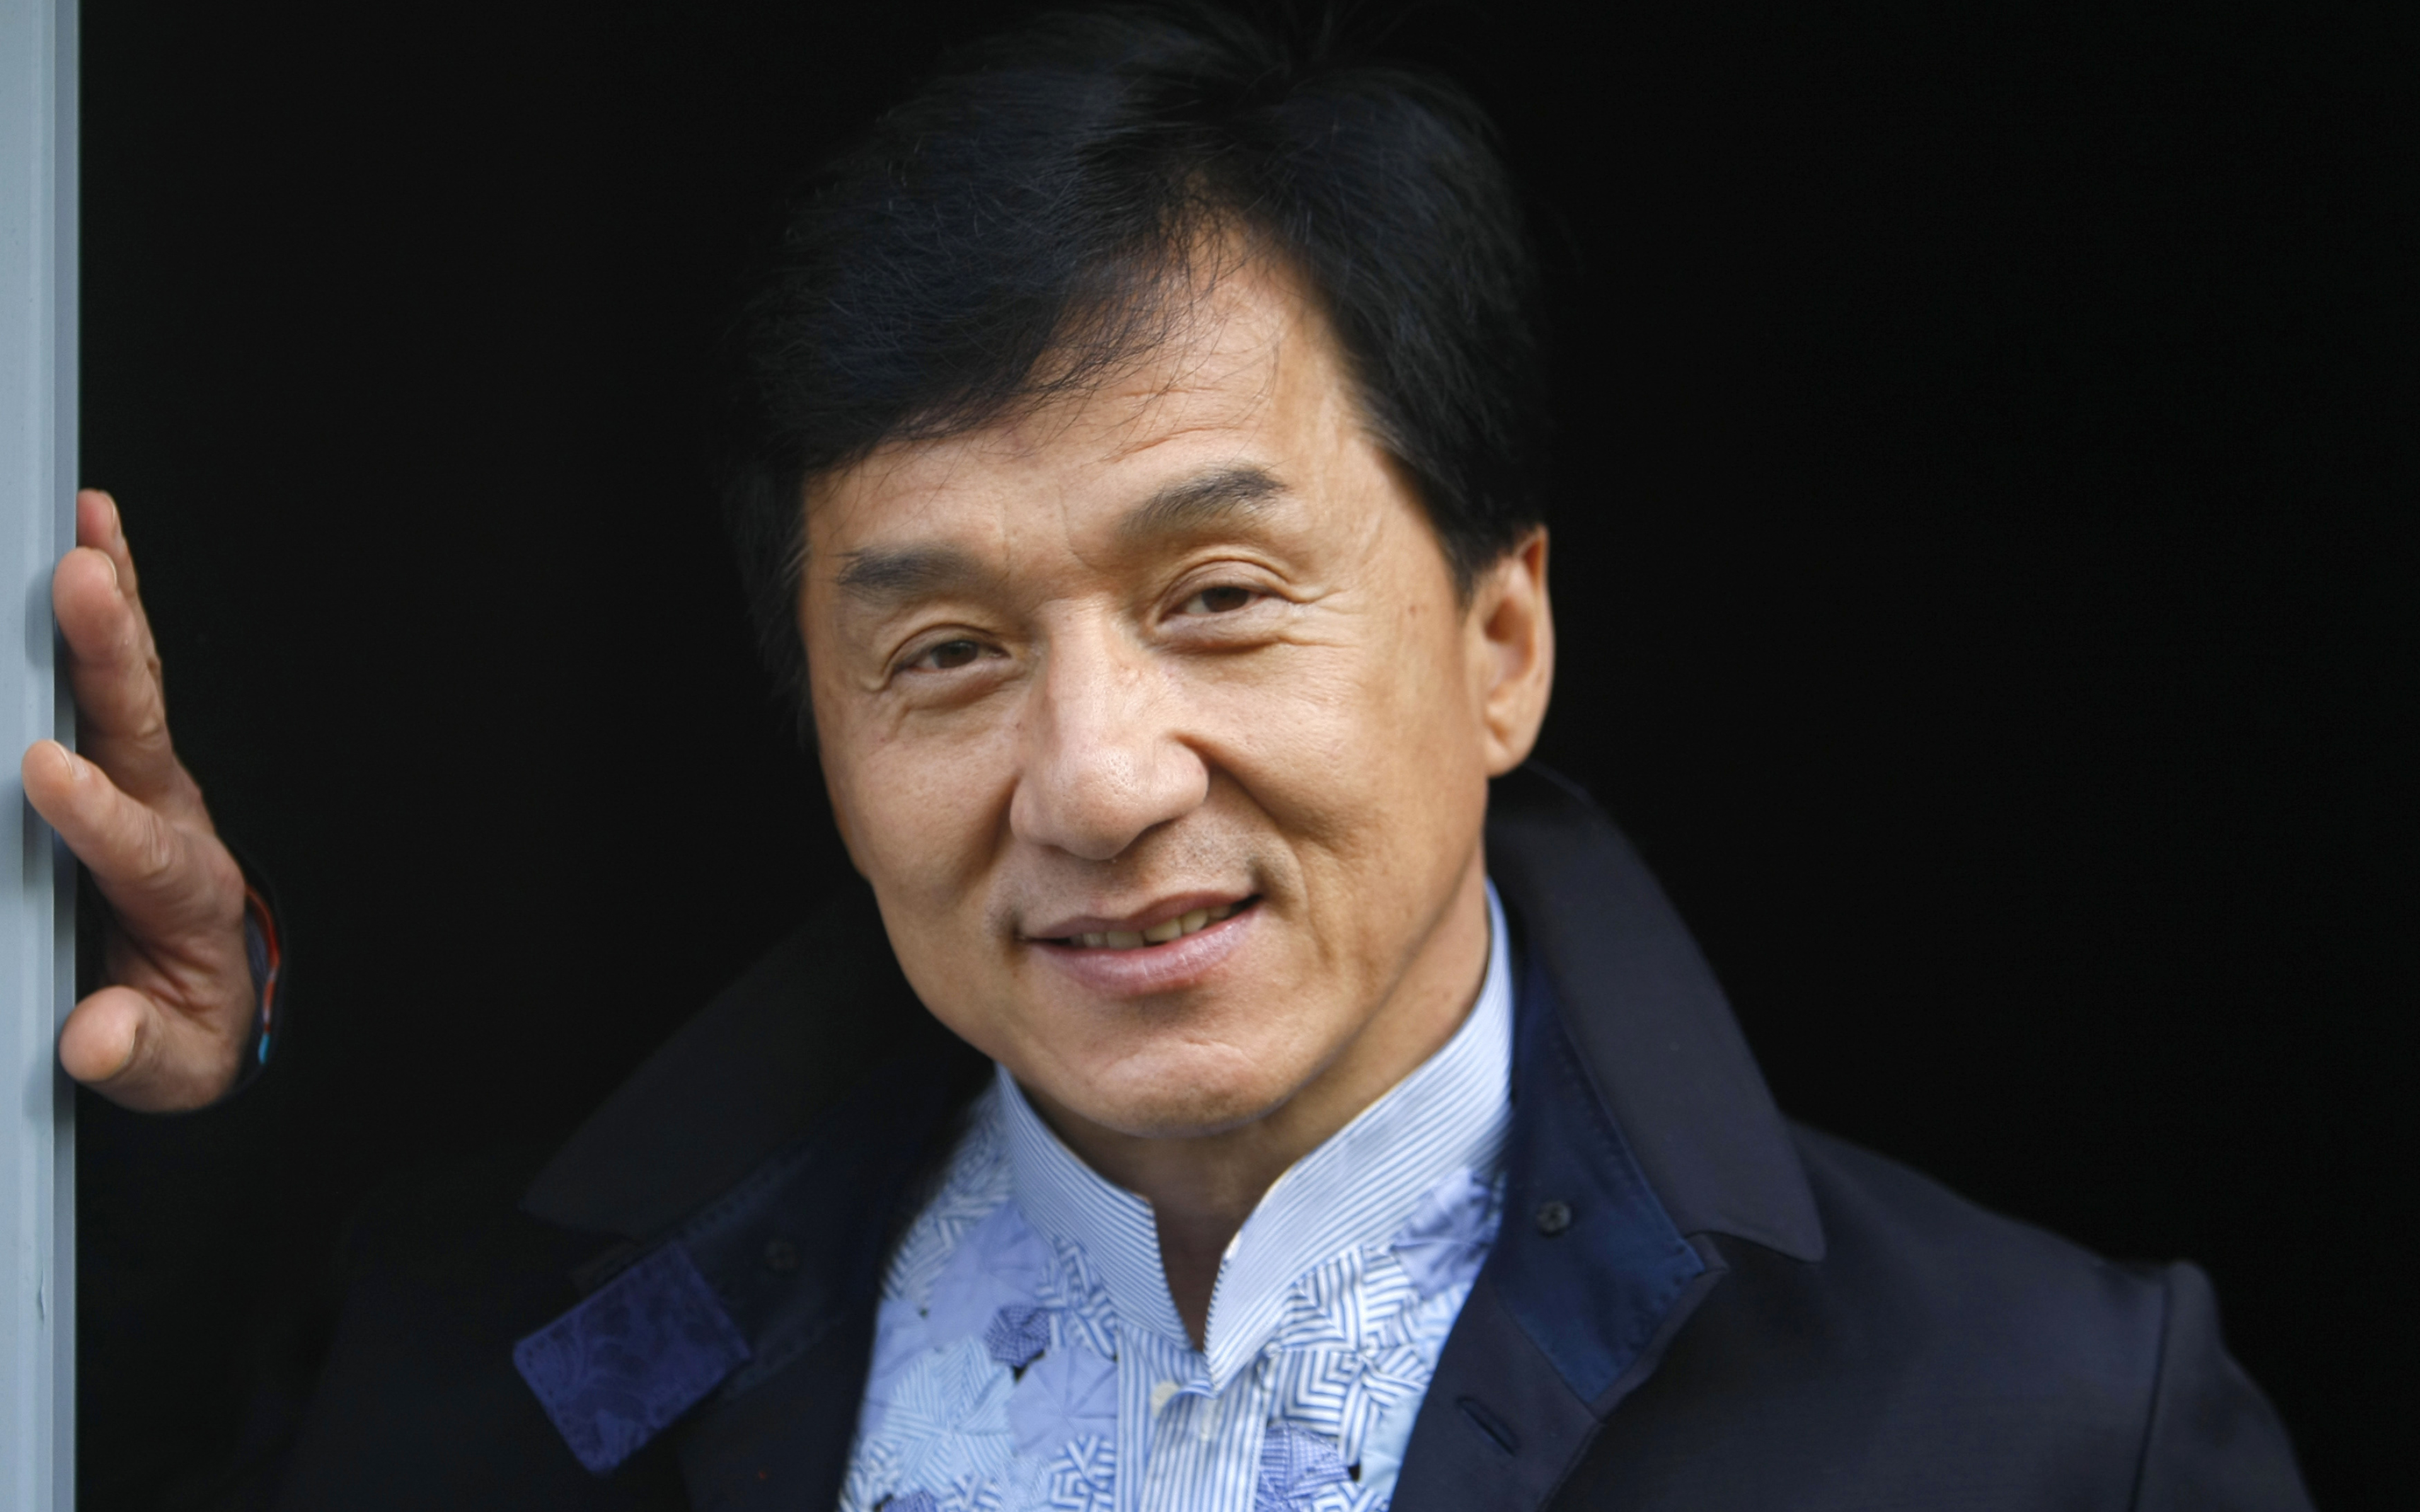 Download Jackie Chan New Photoshoot 3840x2400 Resolution Hd 4k